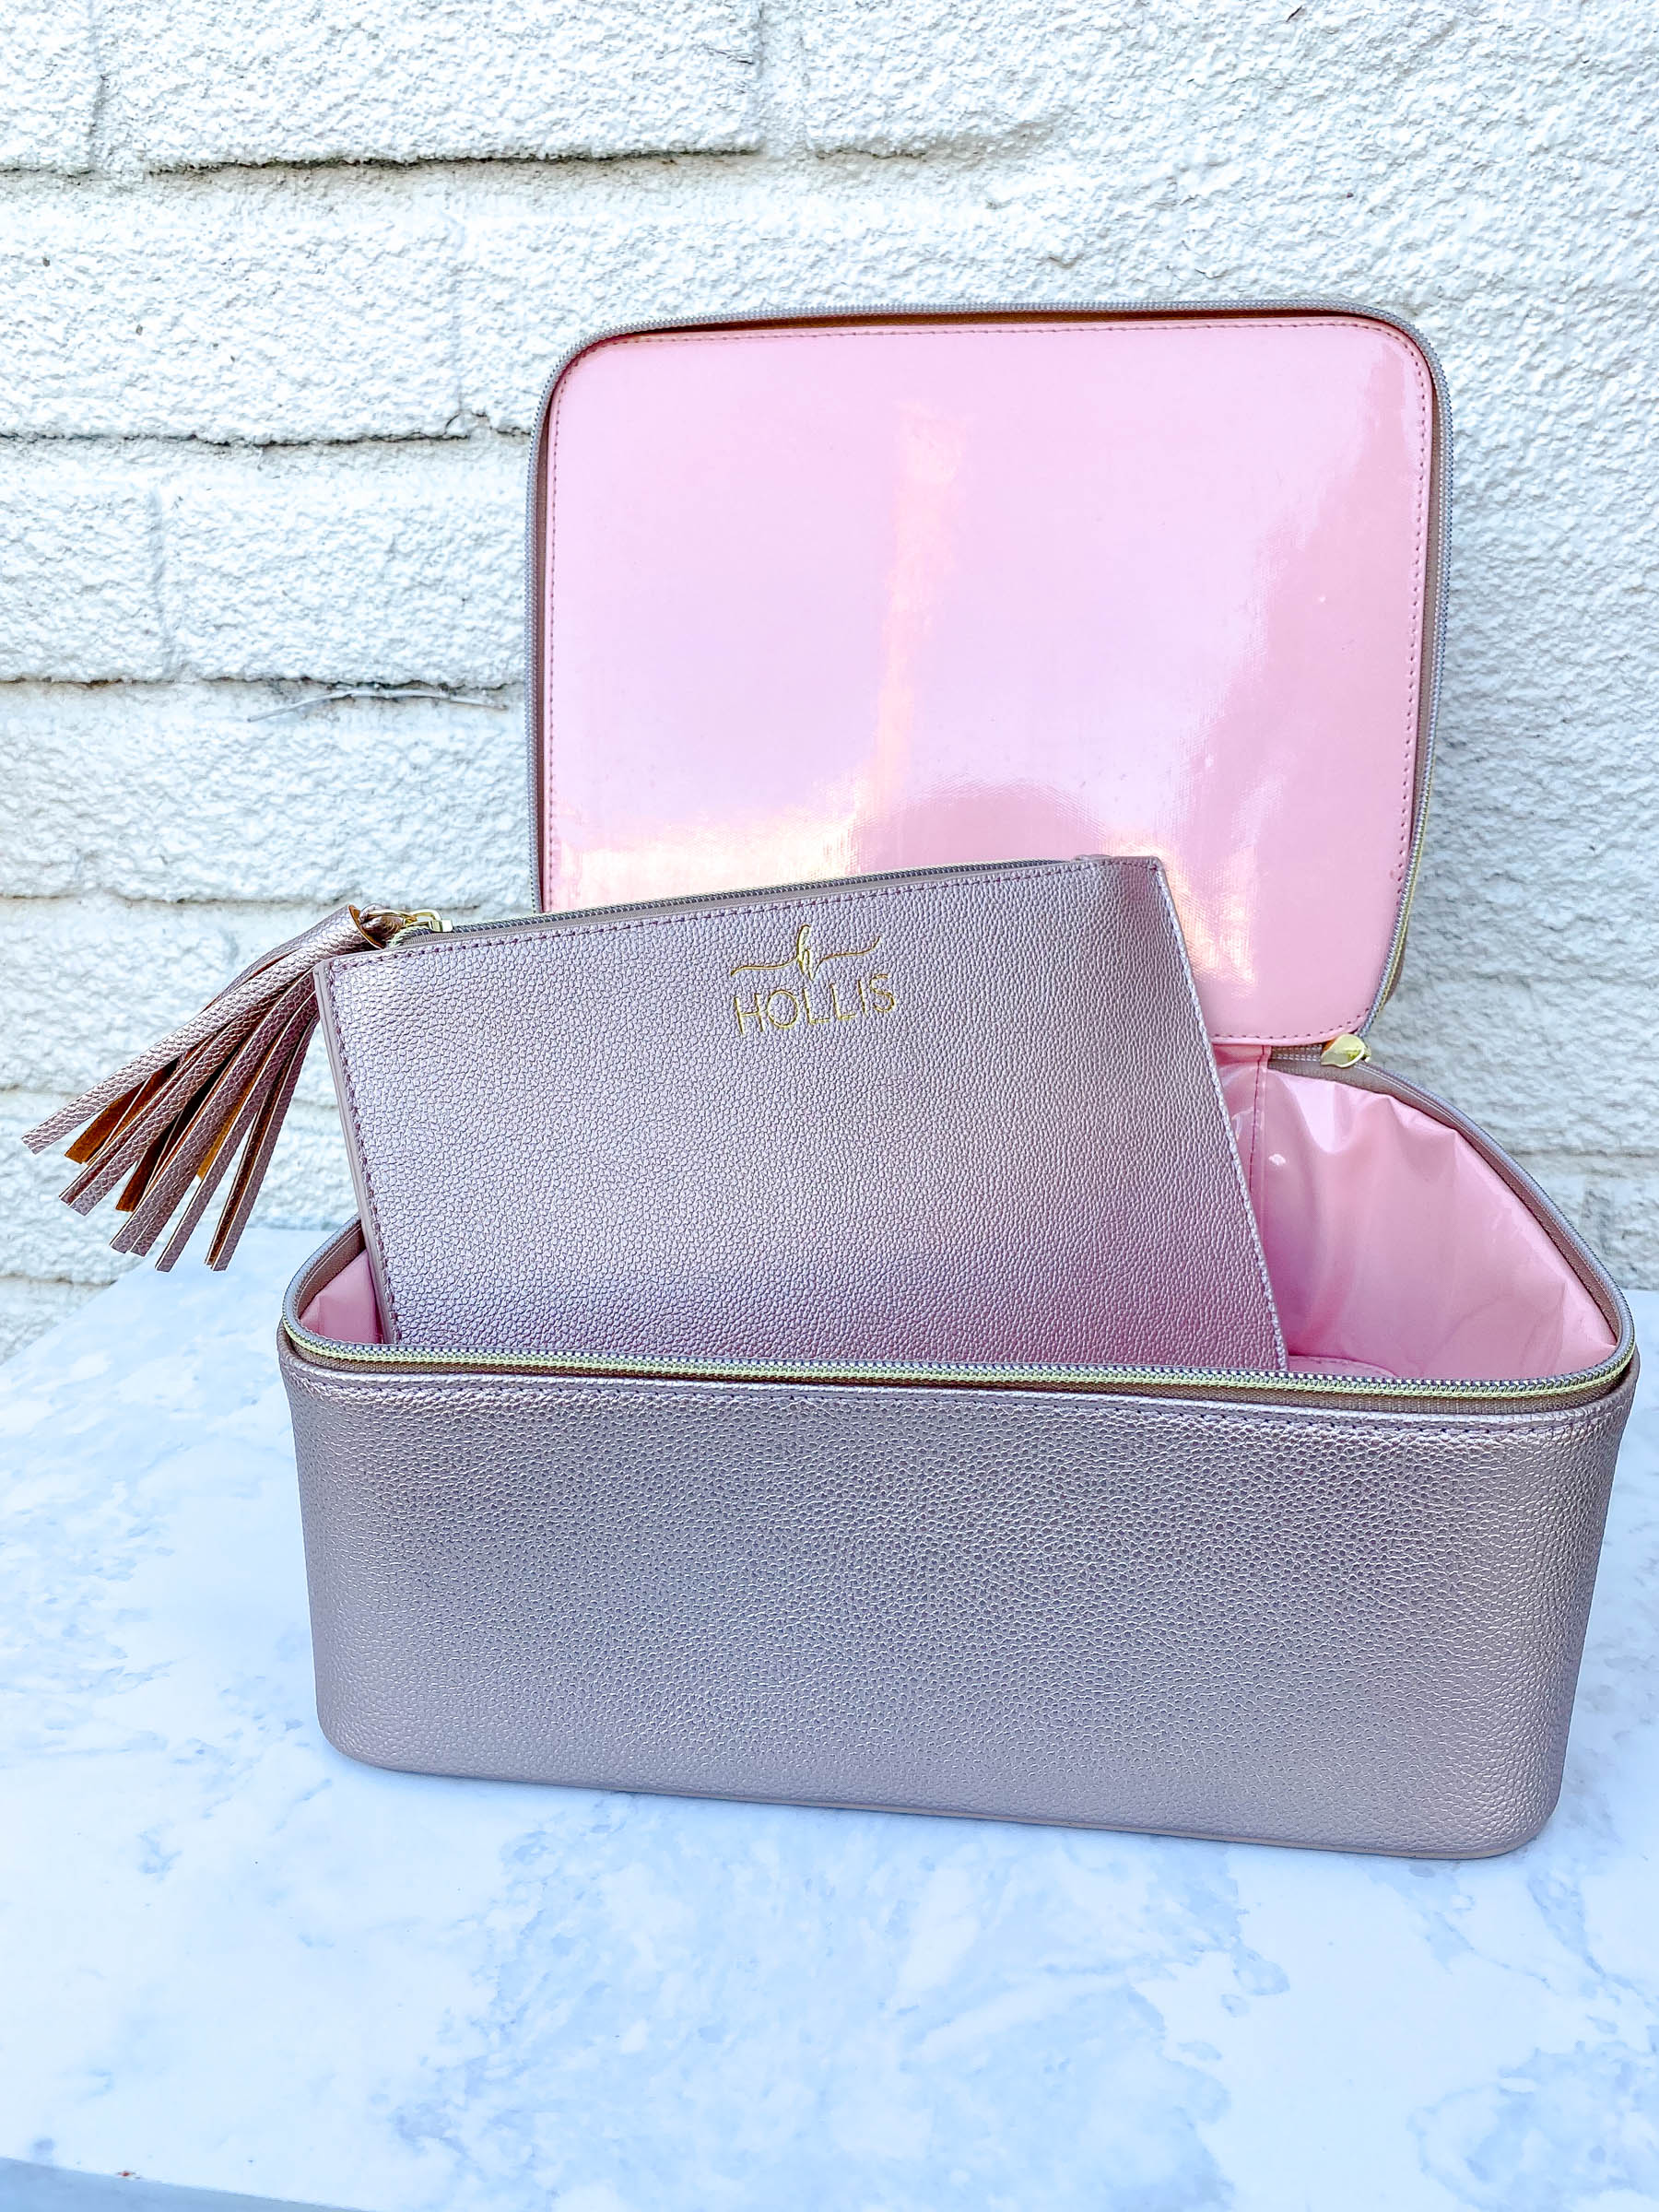 Rose Gold Makeup Organizer